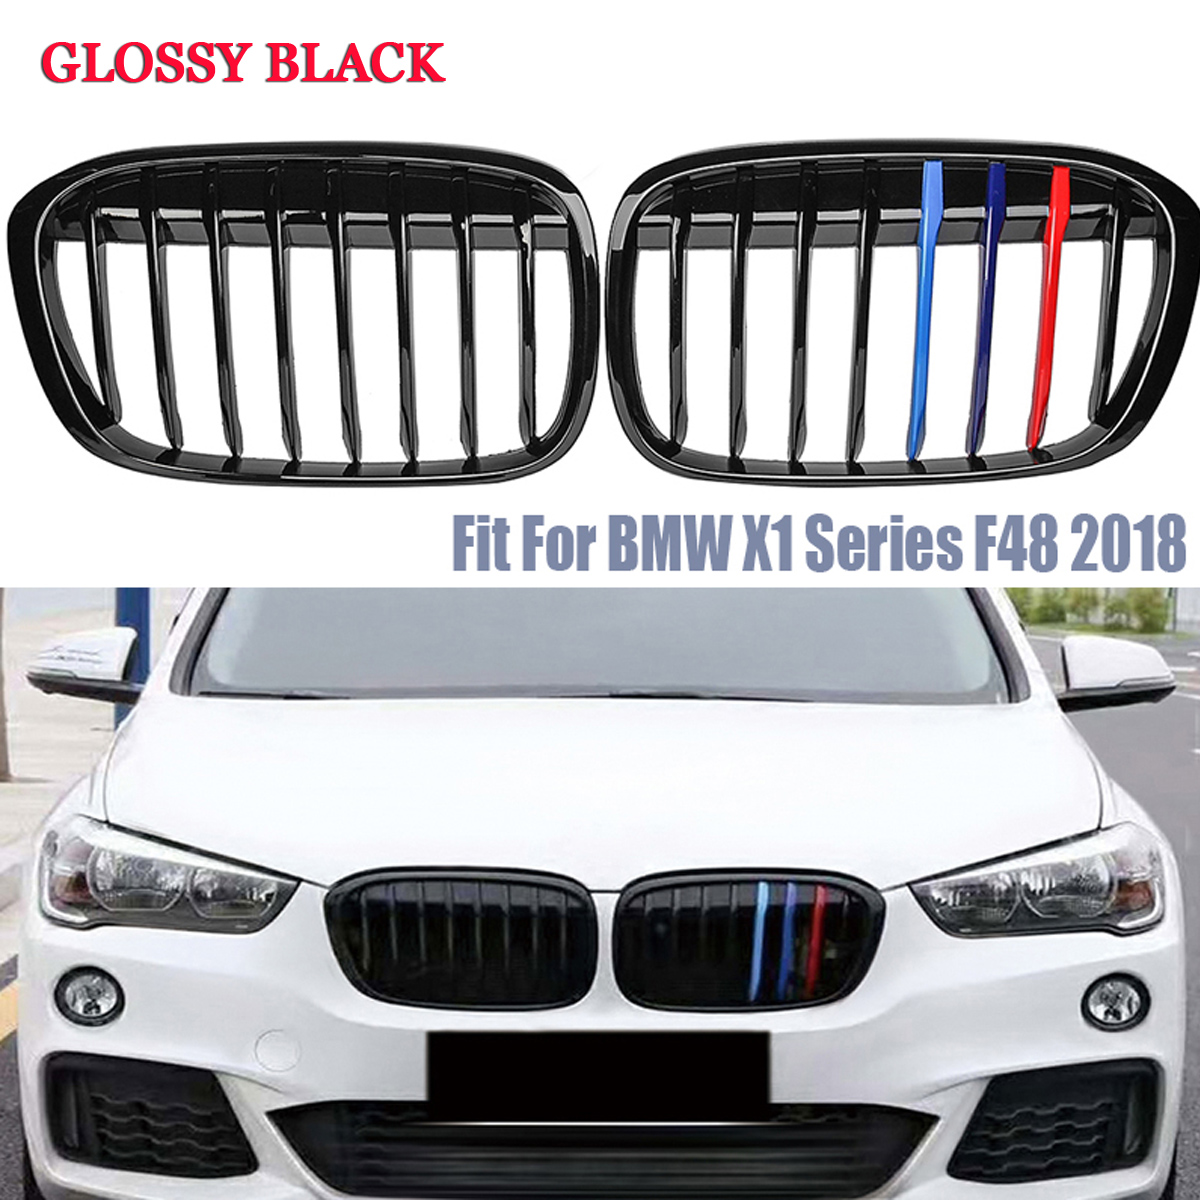 For BMW X1 X-Series F49 F48 16-18 Present Gloss Black Front Kidney Grilles Grill